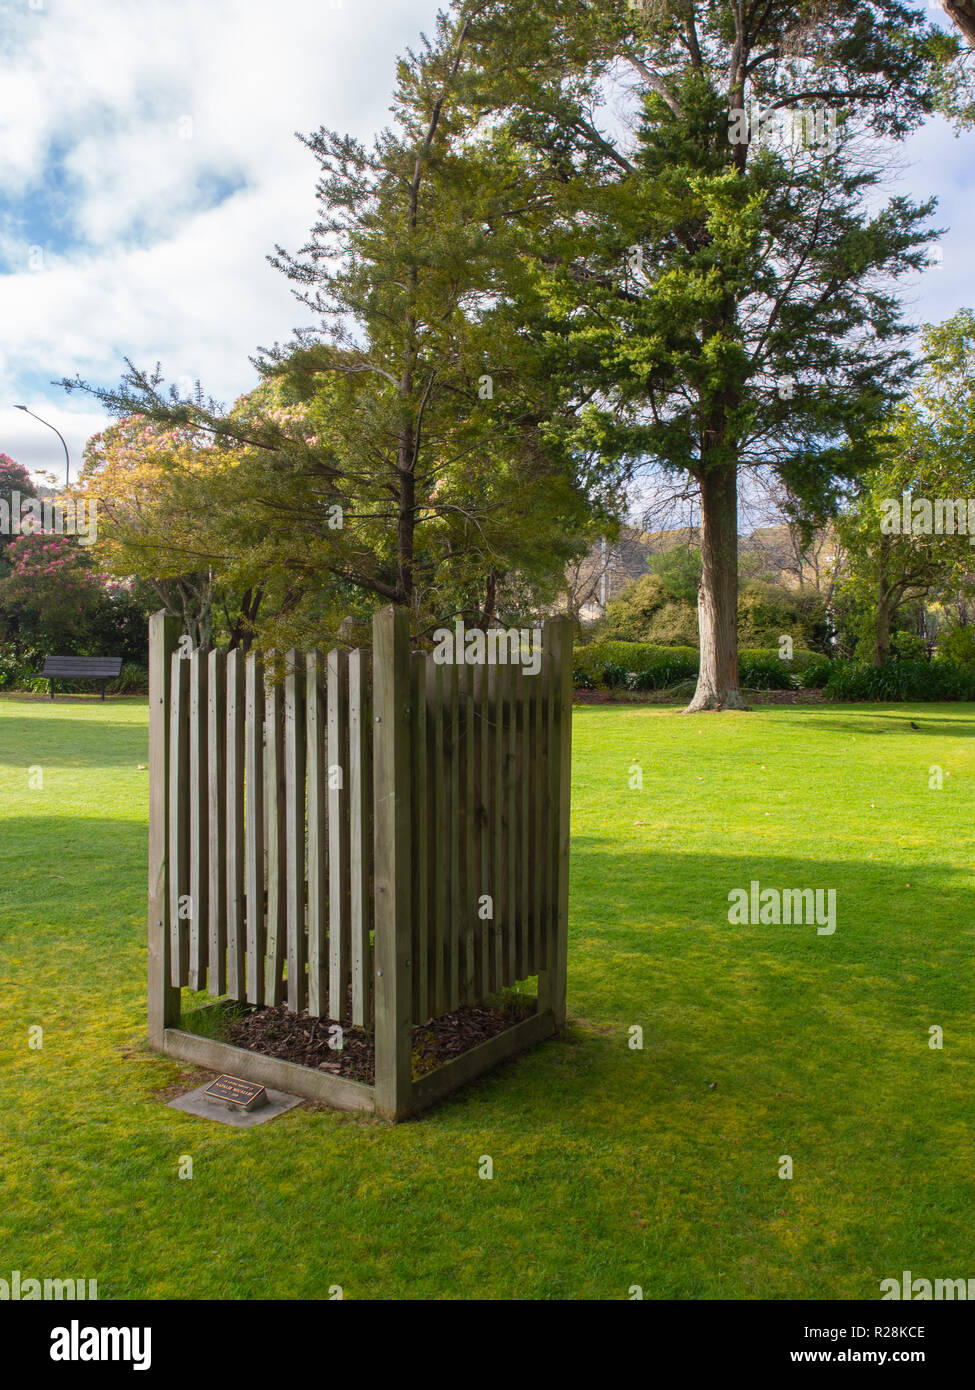 Trees And Green Grass In A Public Space In Upper Hutt - Stock Image